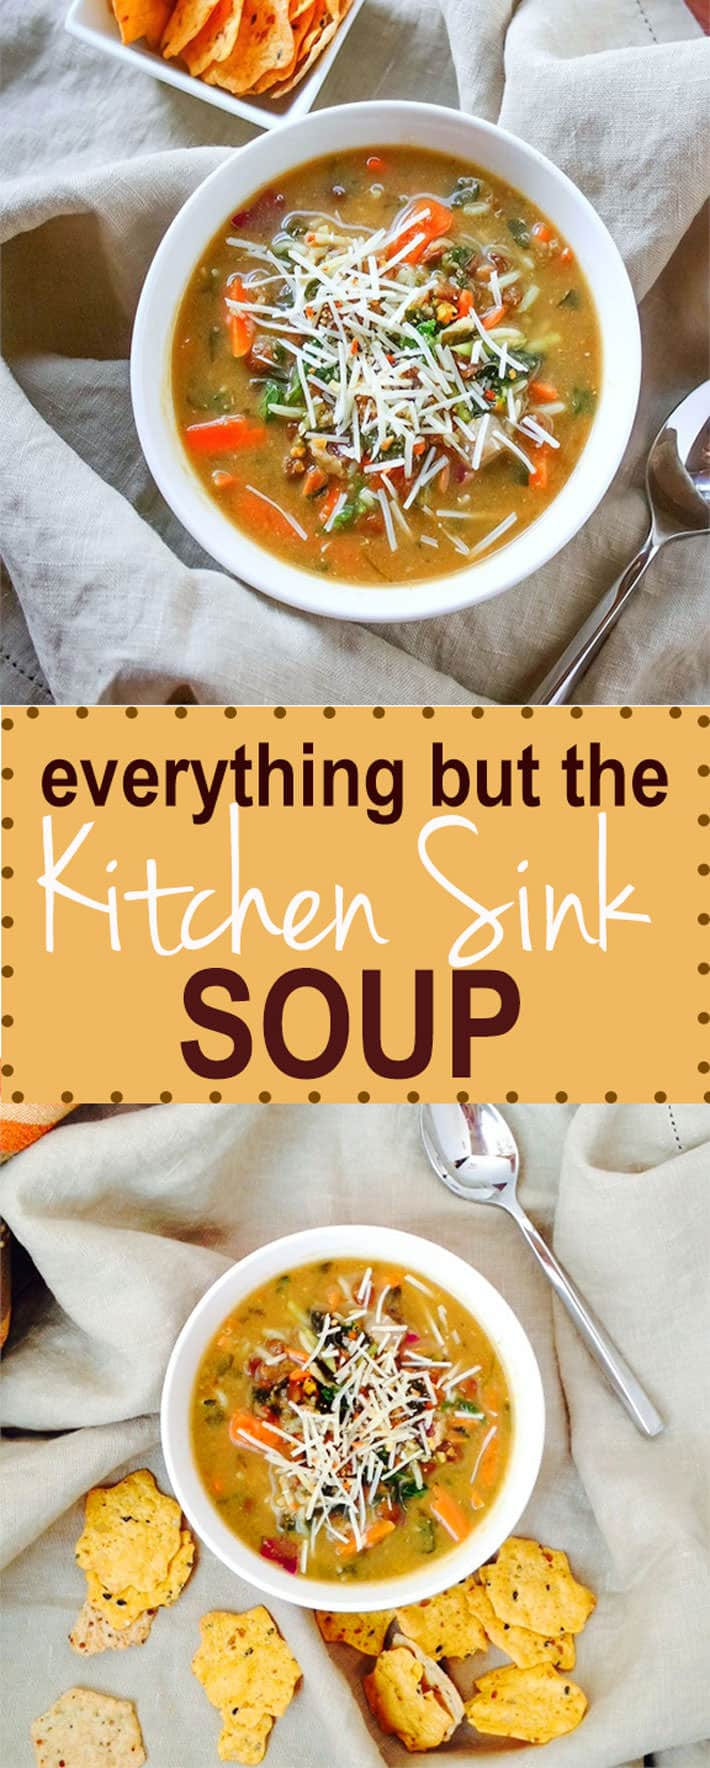 Everything But the Kitchen Sink Soup {Gluten Free}